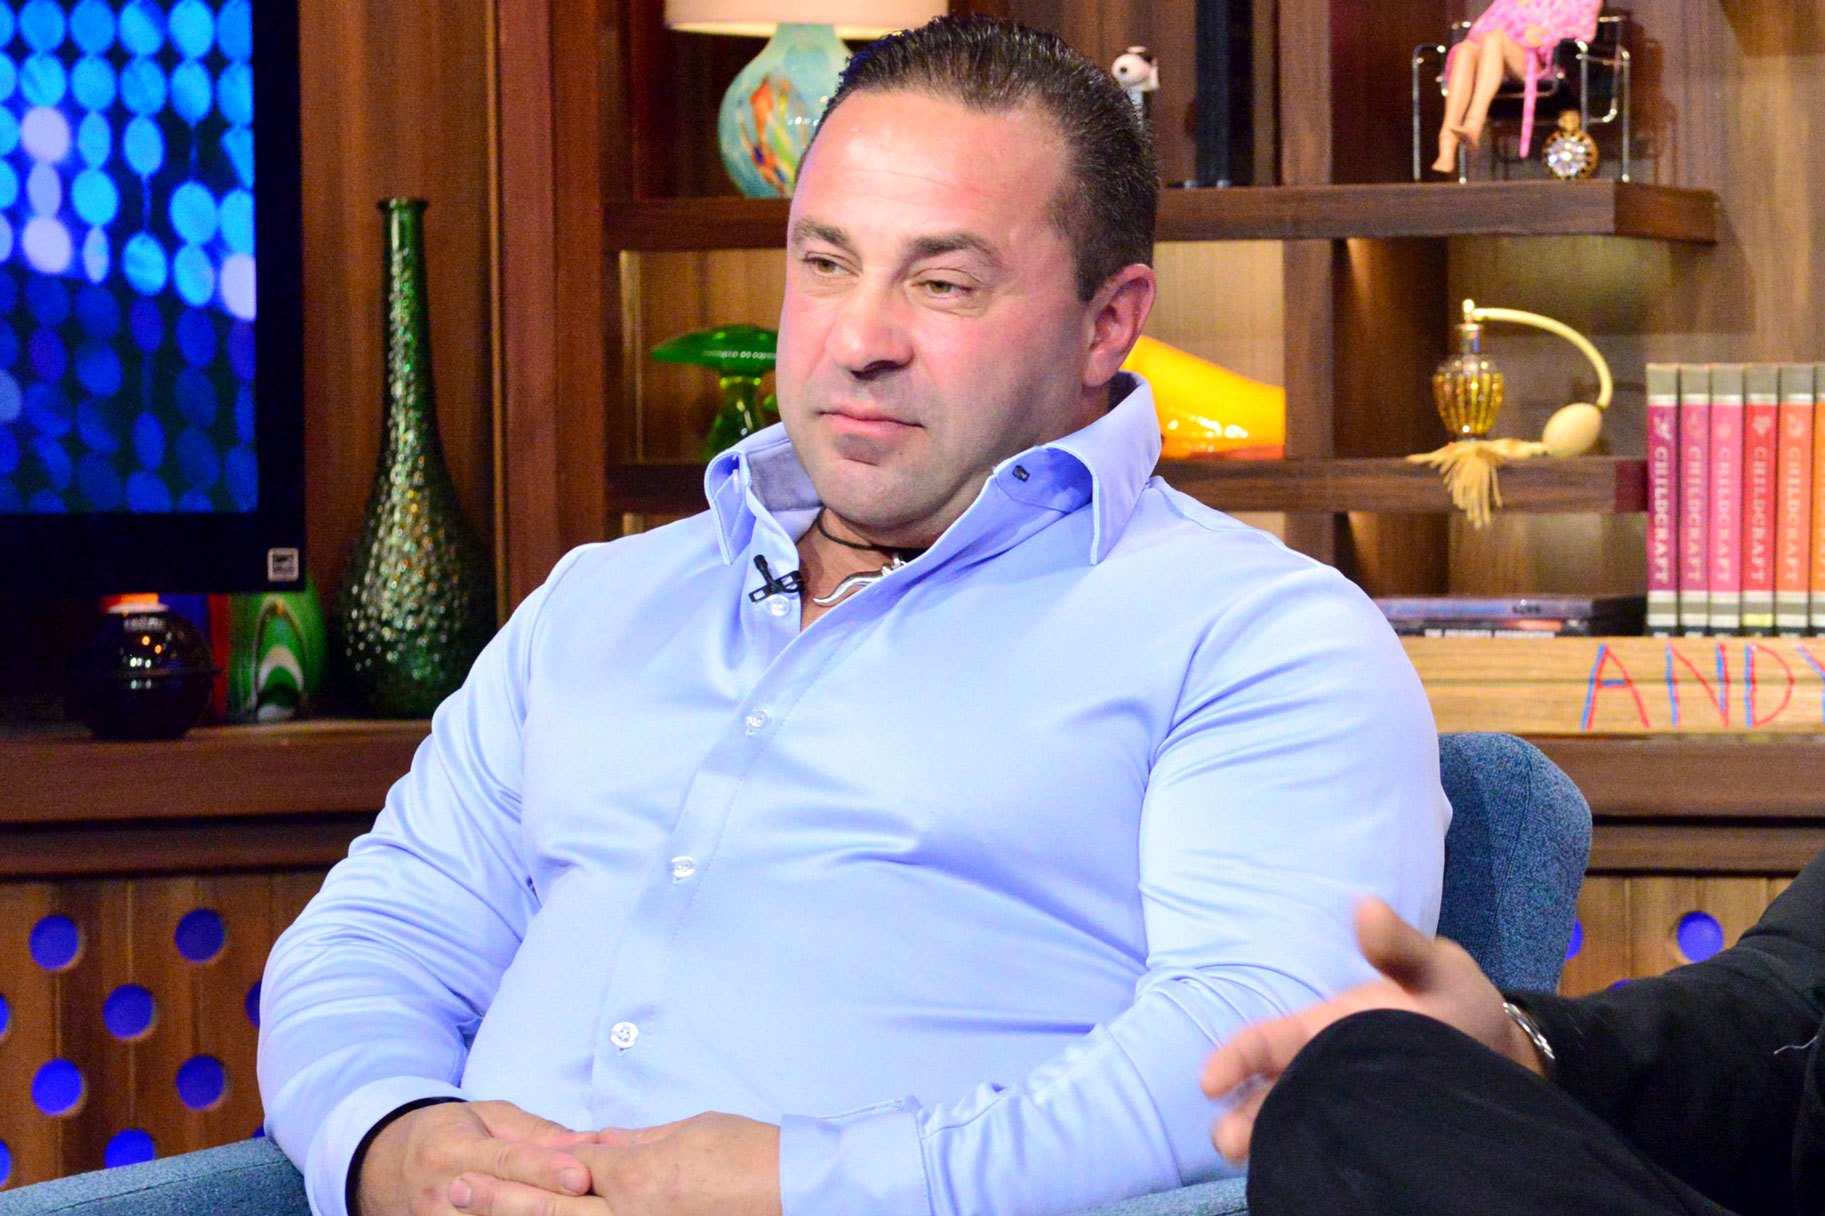 Joe Giudice on Watch What Happens Live